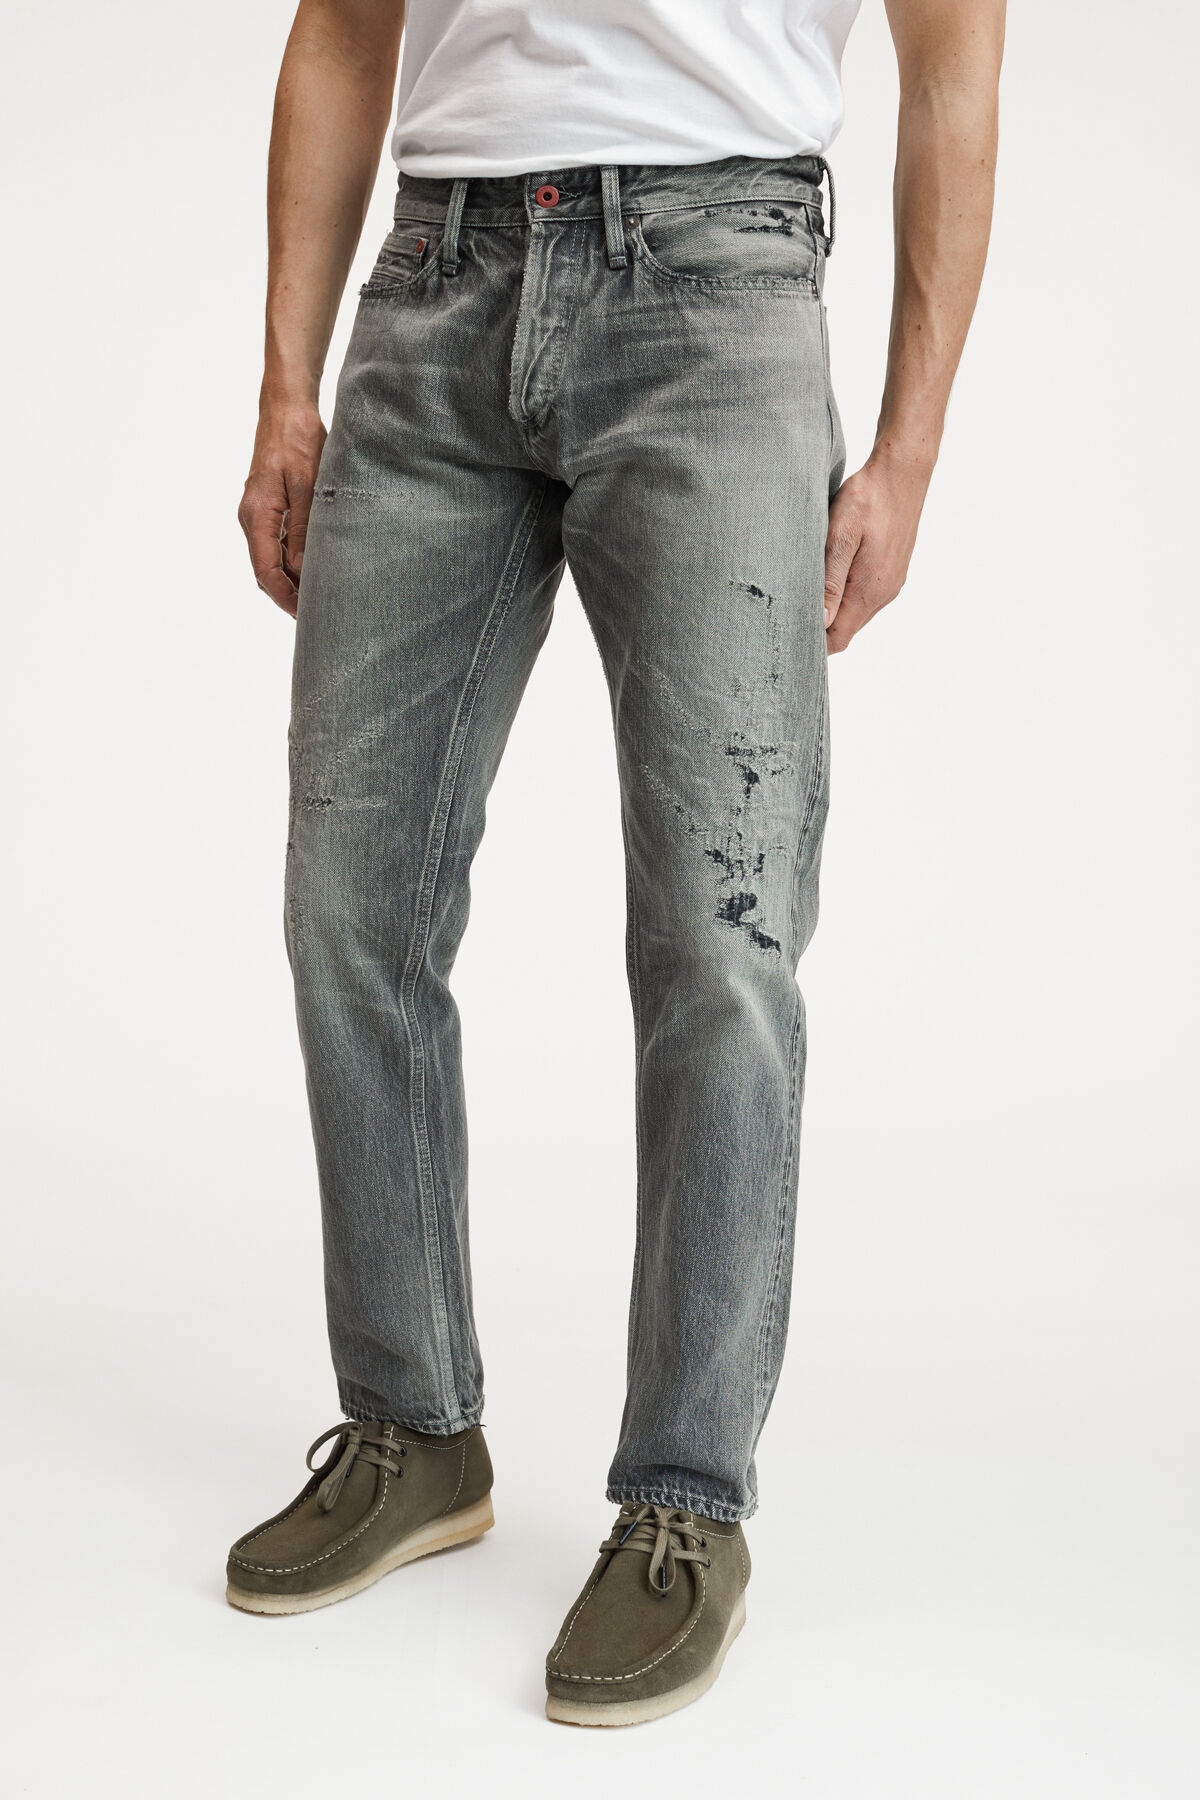 FORGE JAPANESE DOUBLE-BLACK SELVEDGE GREY WASHED DENIM - Loose, Tapered Fit